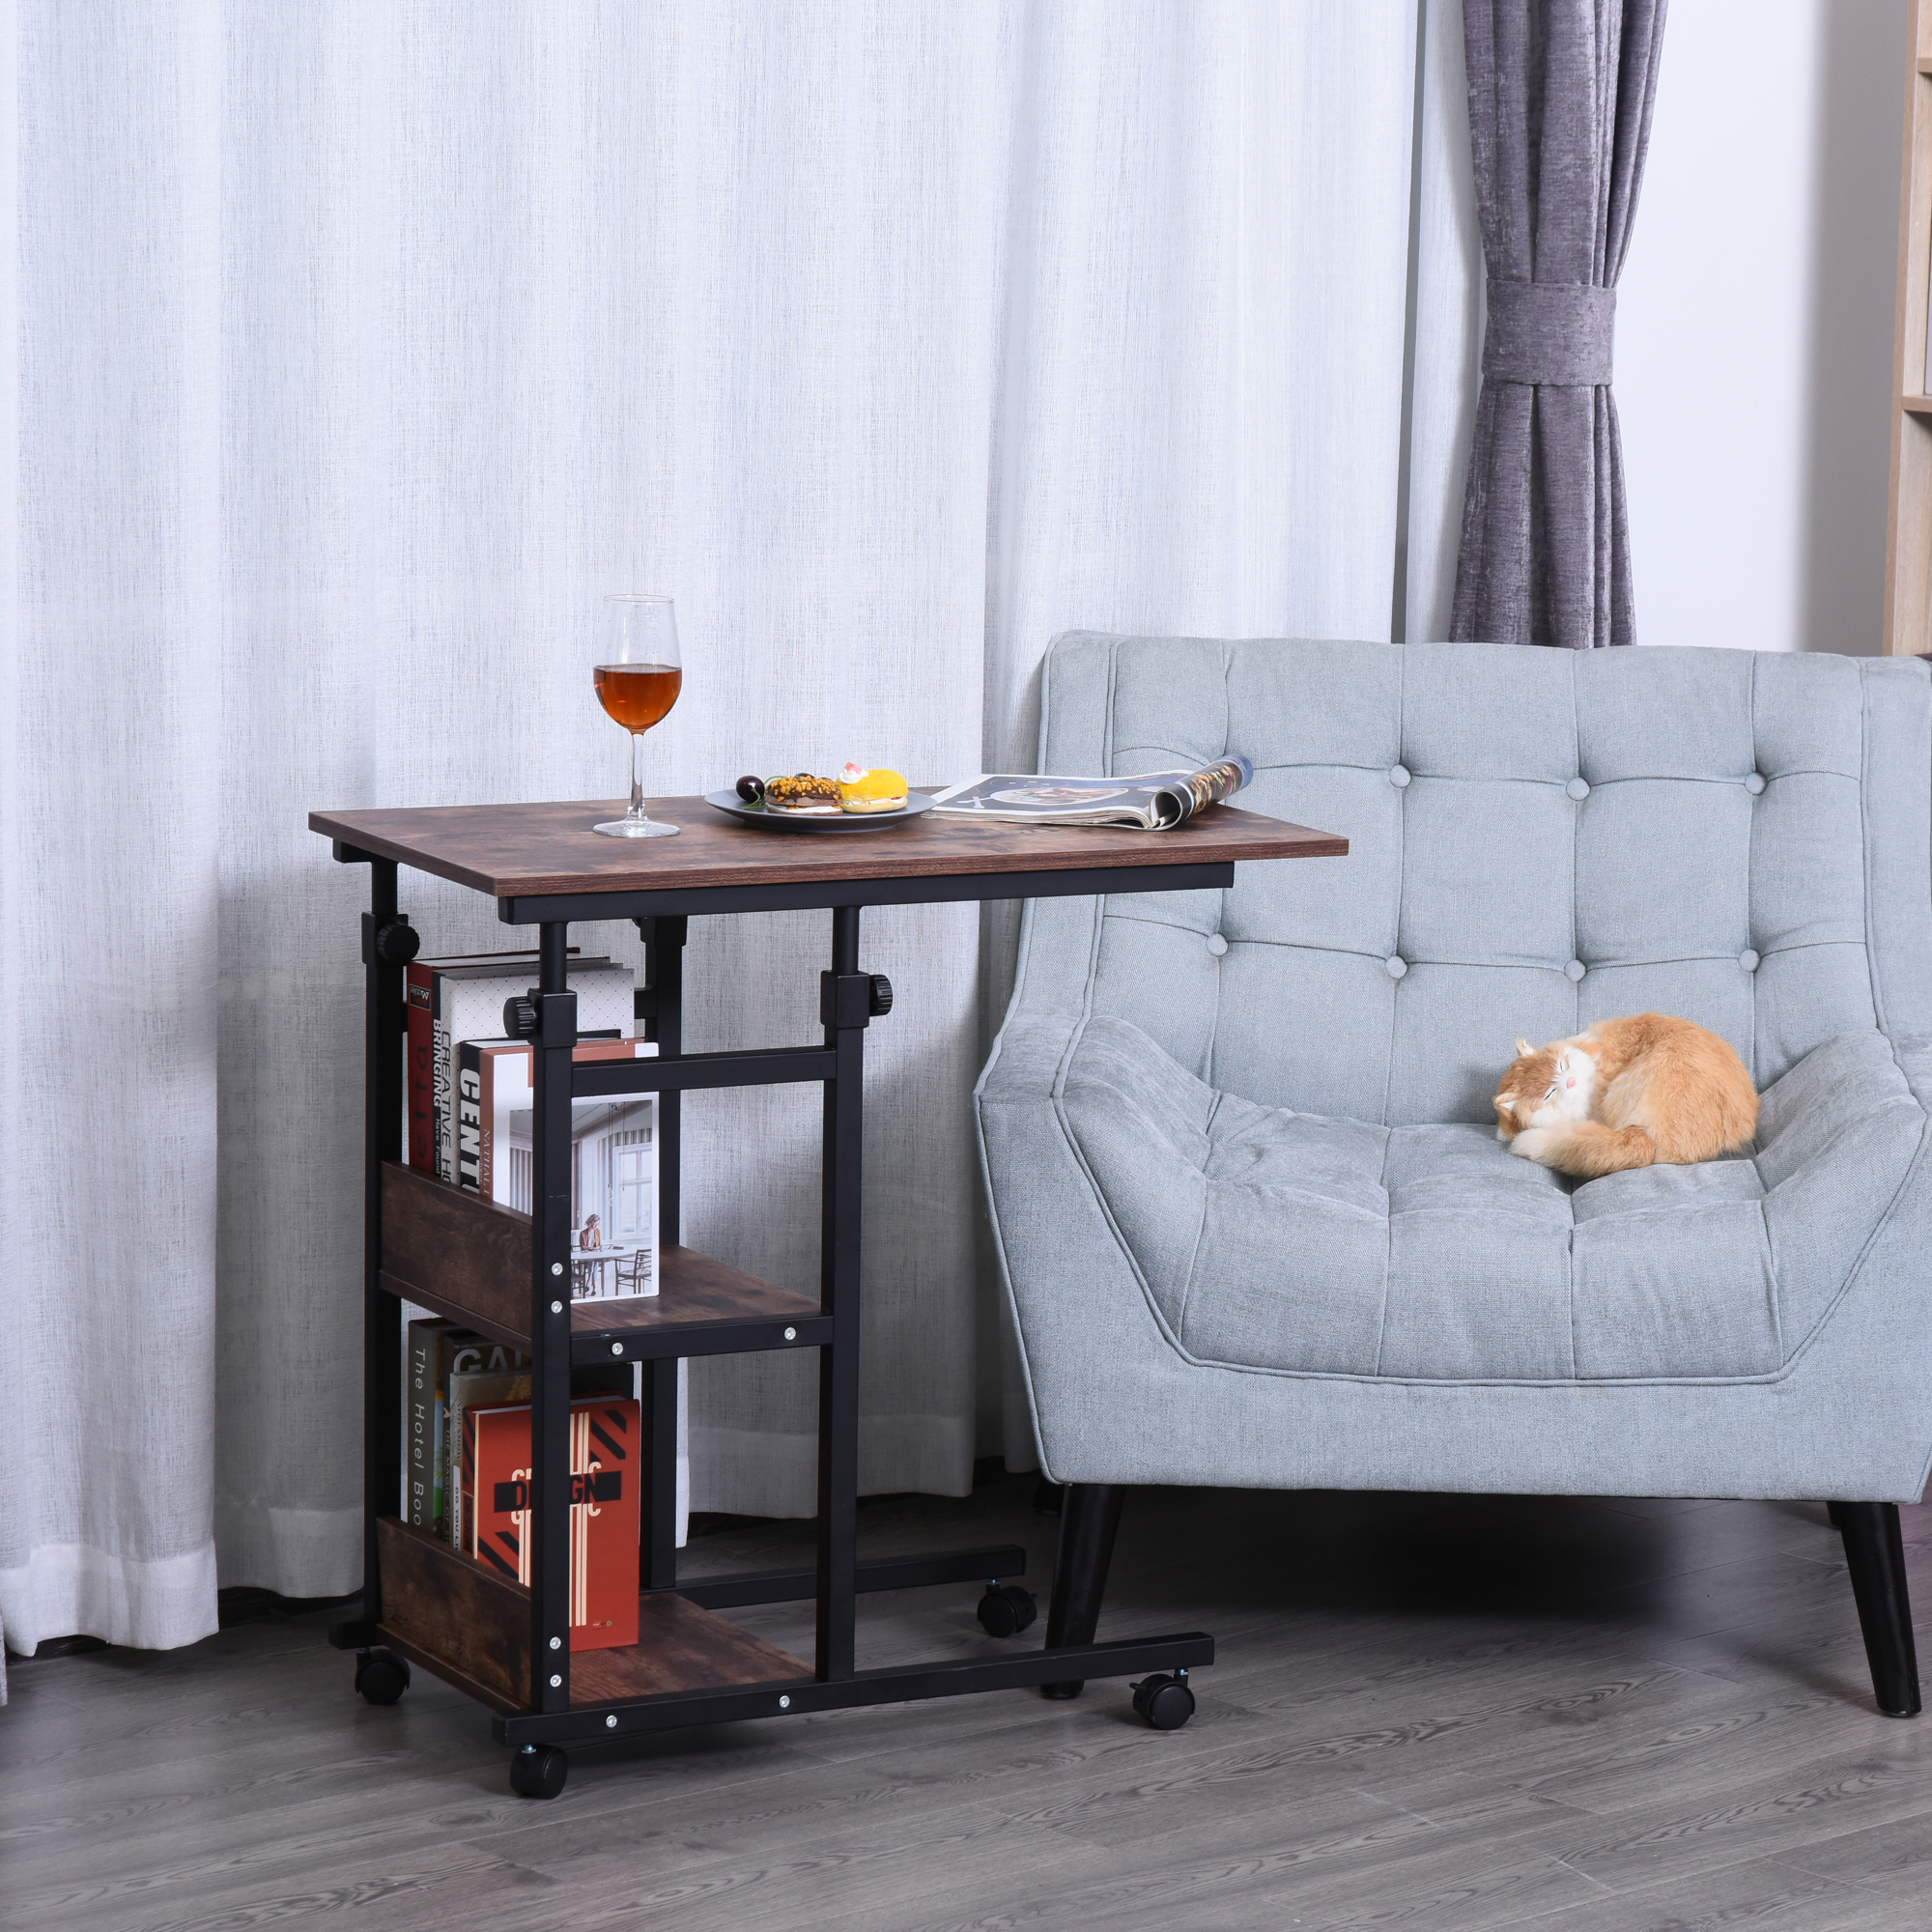 Picture of: C Shaped Mobile Sofa Bed Side Table Adjust Height 3 Tier Cart W Casters Brake Ebay